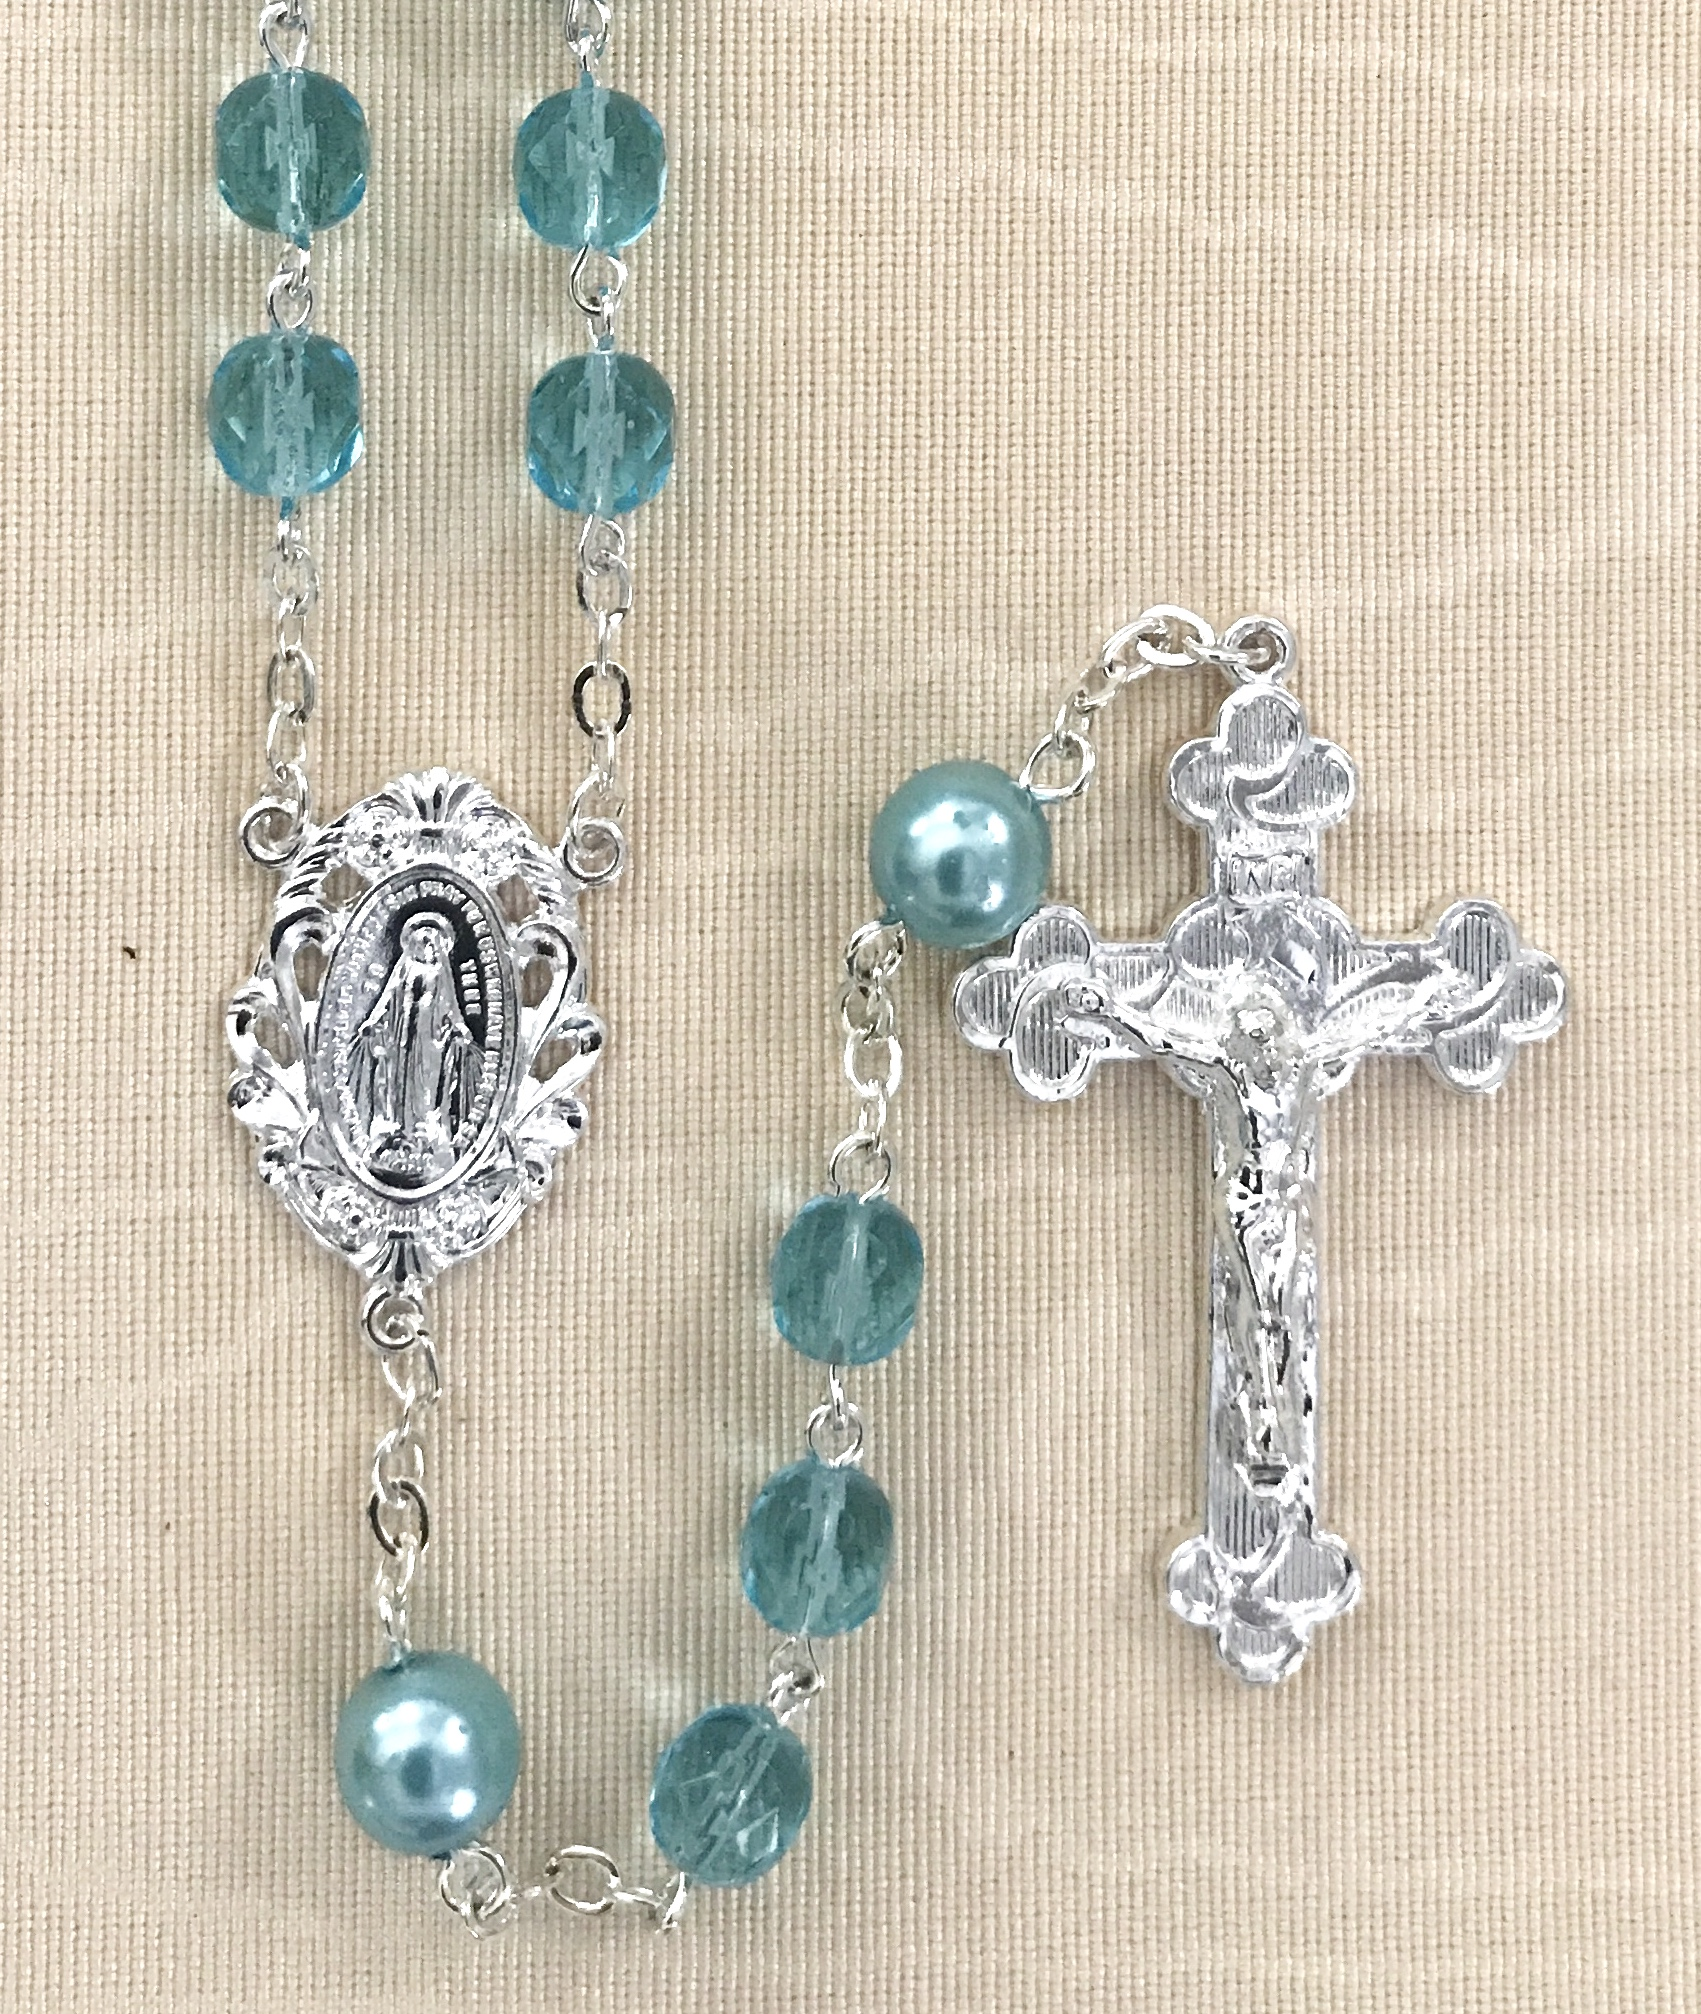 6mm AQUA WITH PEARL OUR FATHER BEADS STERLING SILVER PLATED ROSARY GIFT BOXED